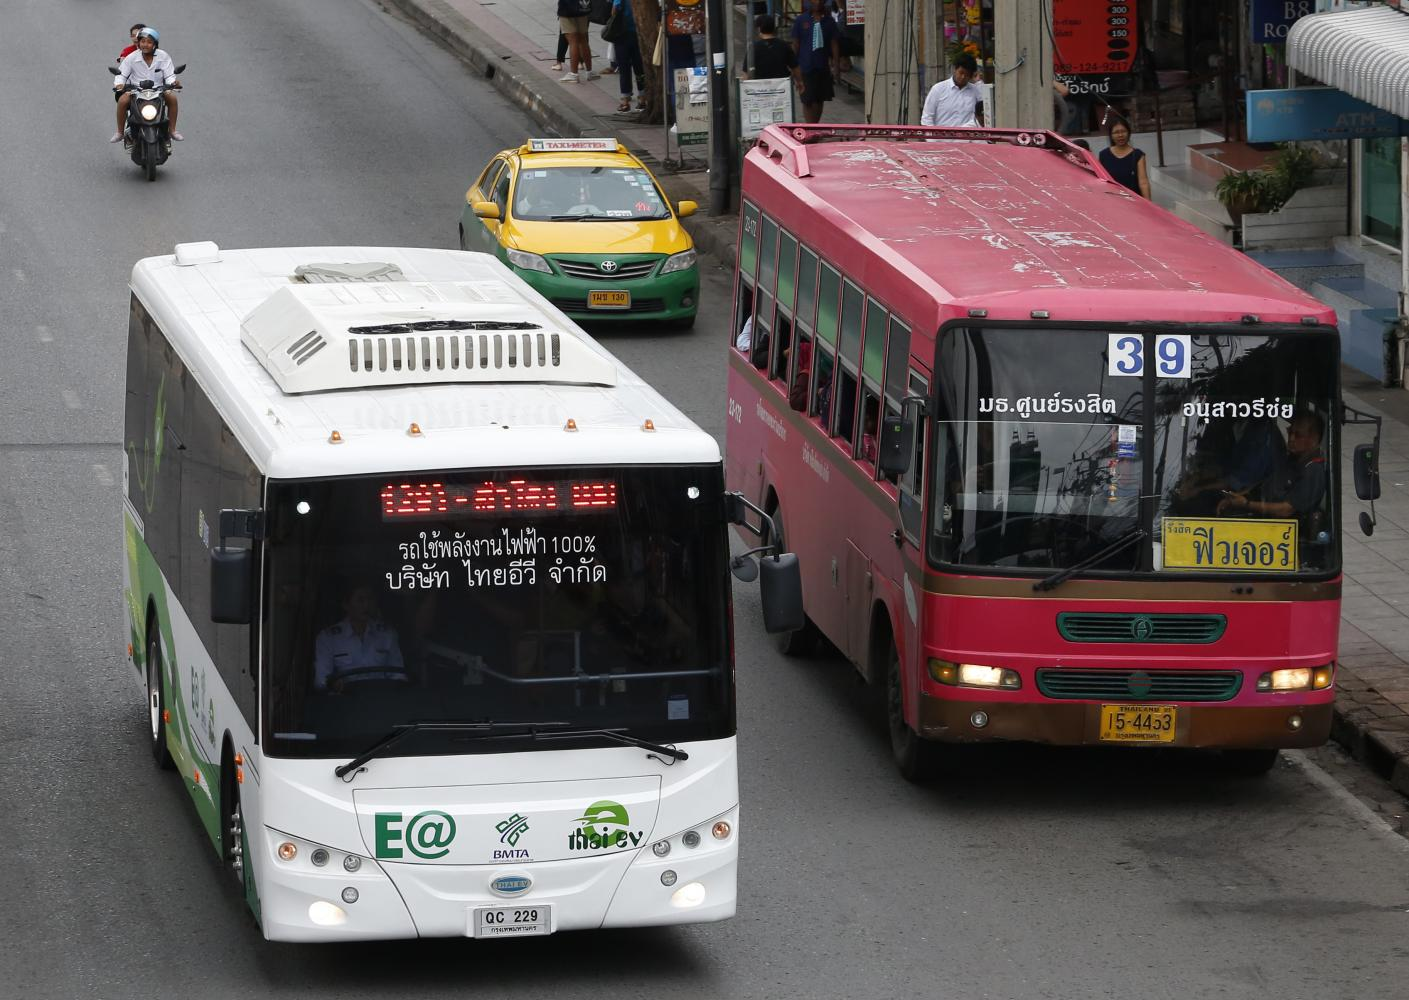 A new electric bus, left, on Phahon Yothin Road in the capital during a test run by the Bangkok Mass Transit Authority.PATTARAPONG CHATPATTARASILL